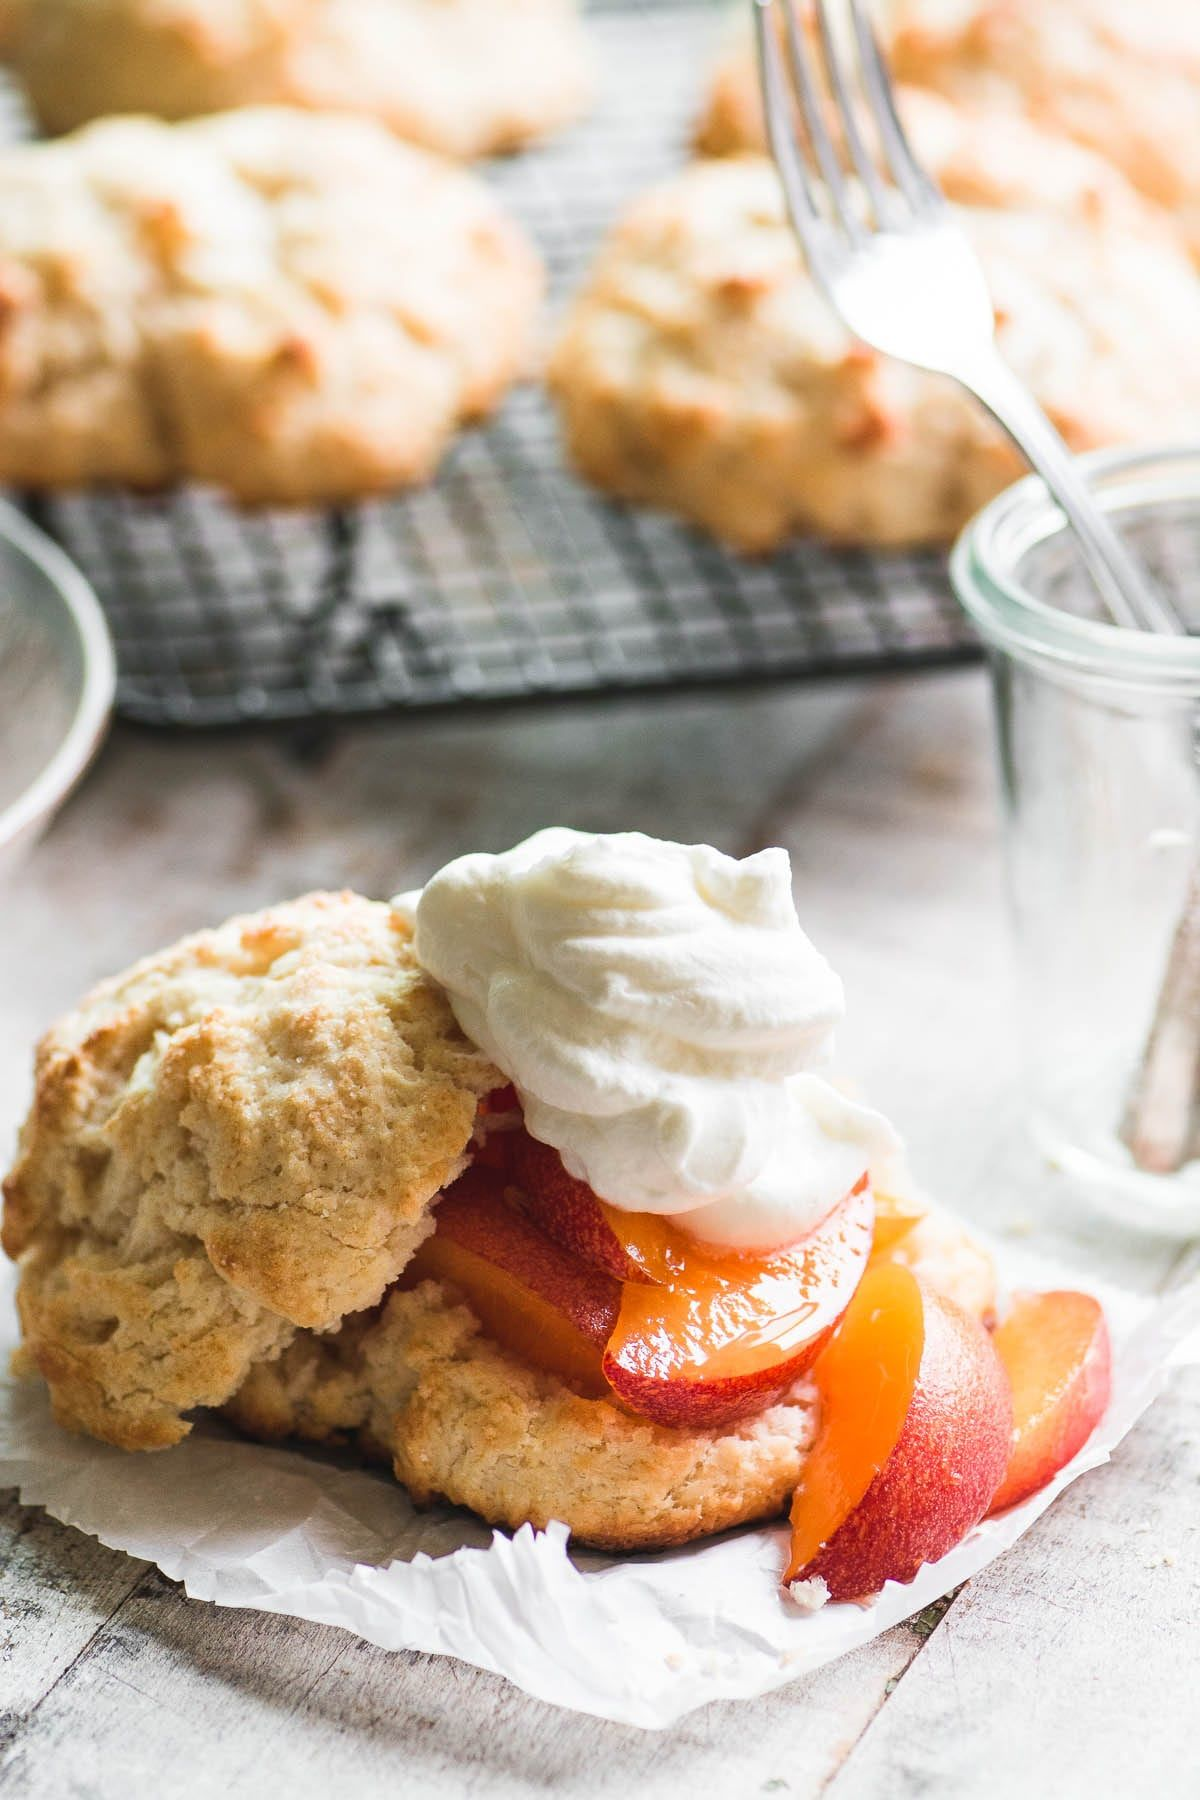 Communication on this topic: Peach Shortcakes with Ginger Cream, peach-shortcakes-with-ginger-cream/